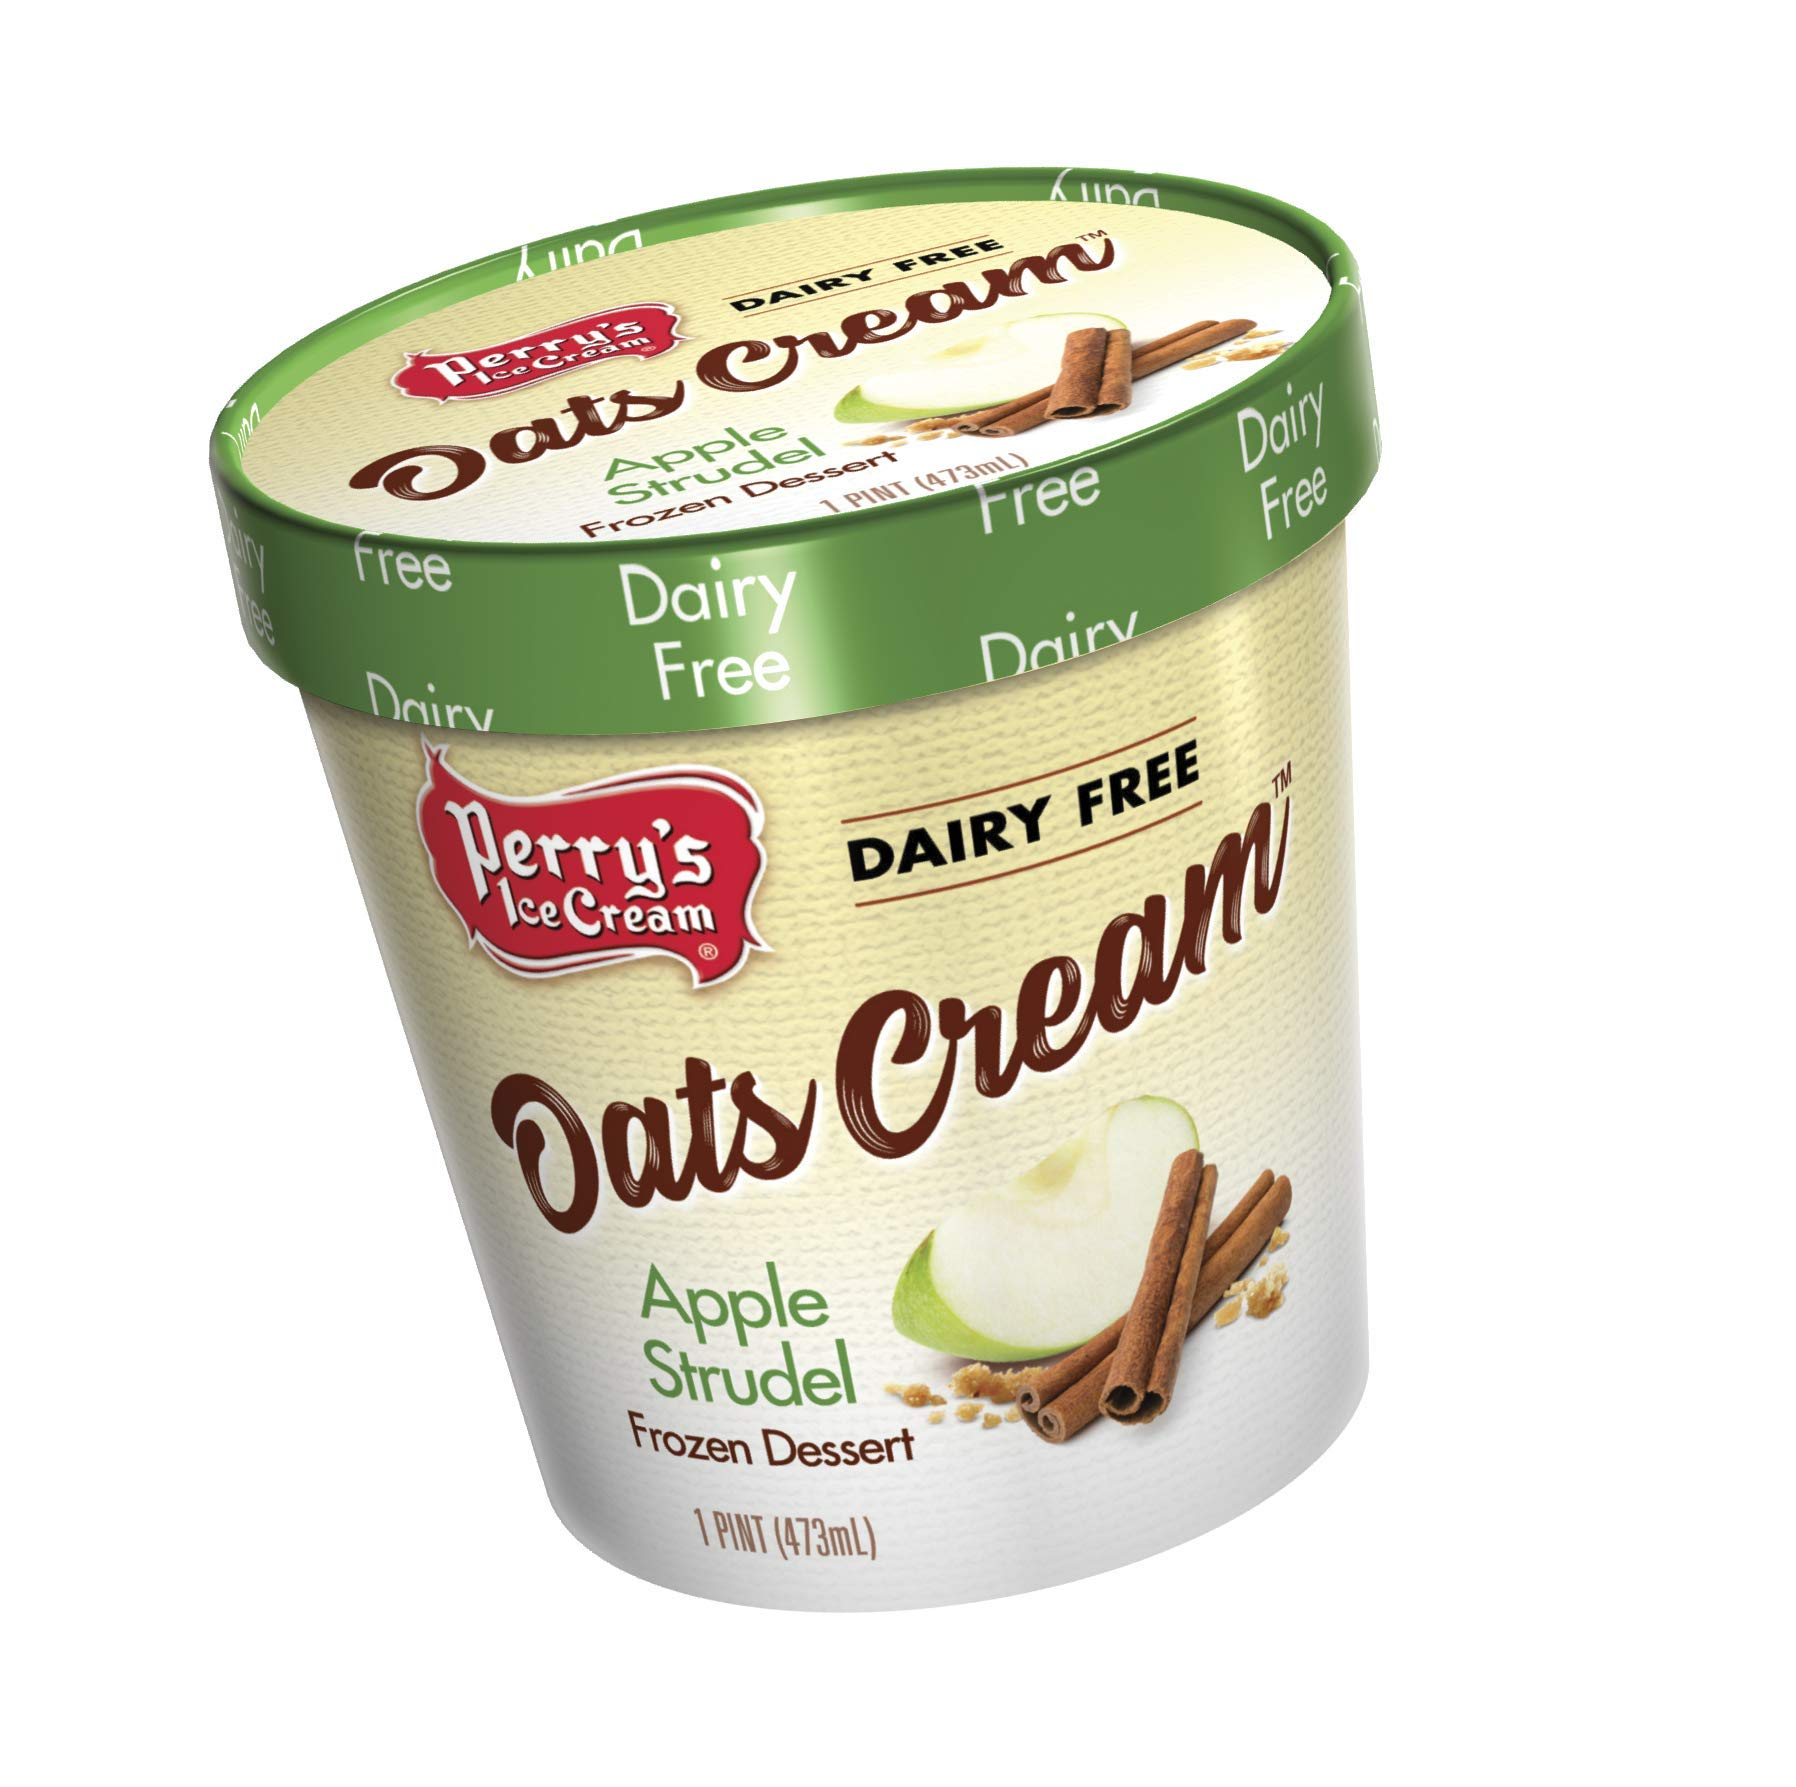 Perry's Ice Cream, Pint, Oats Cream, Apple Strudel - Pack of 8